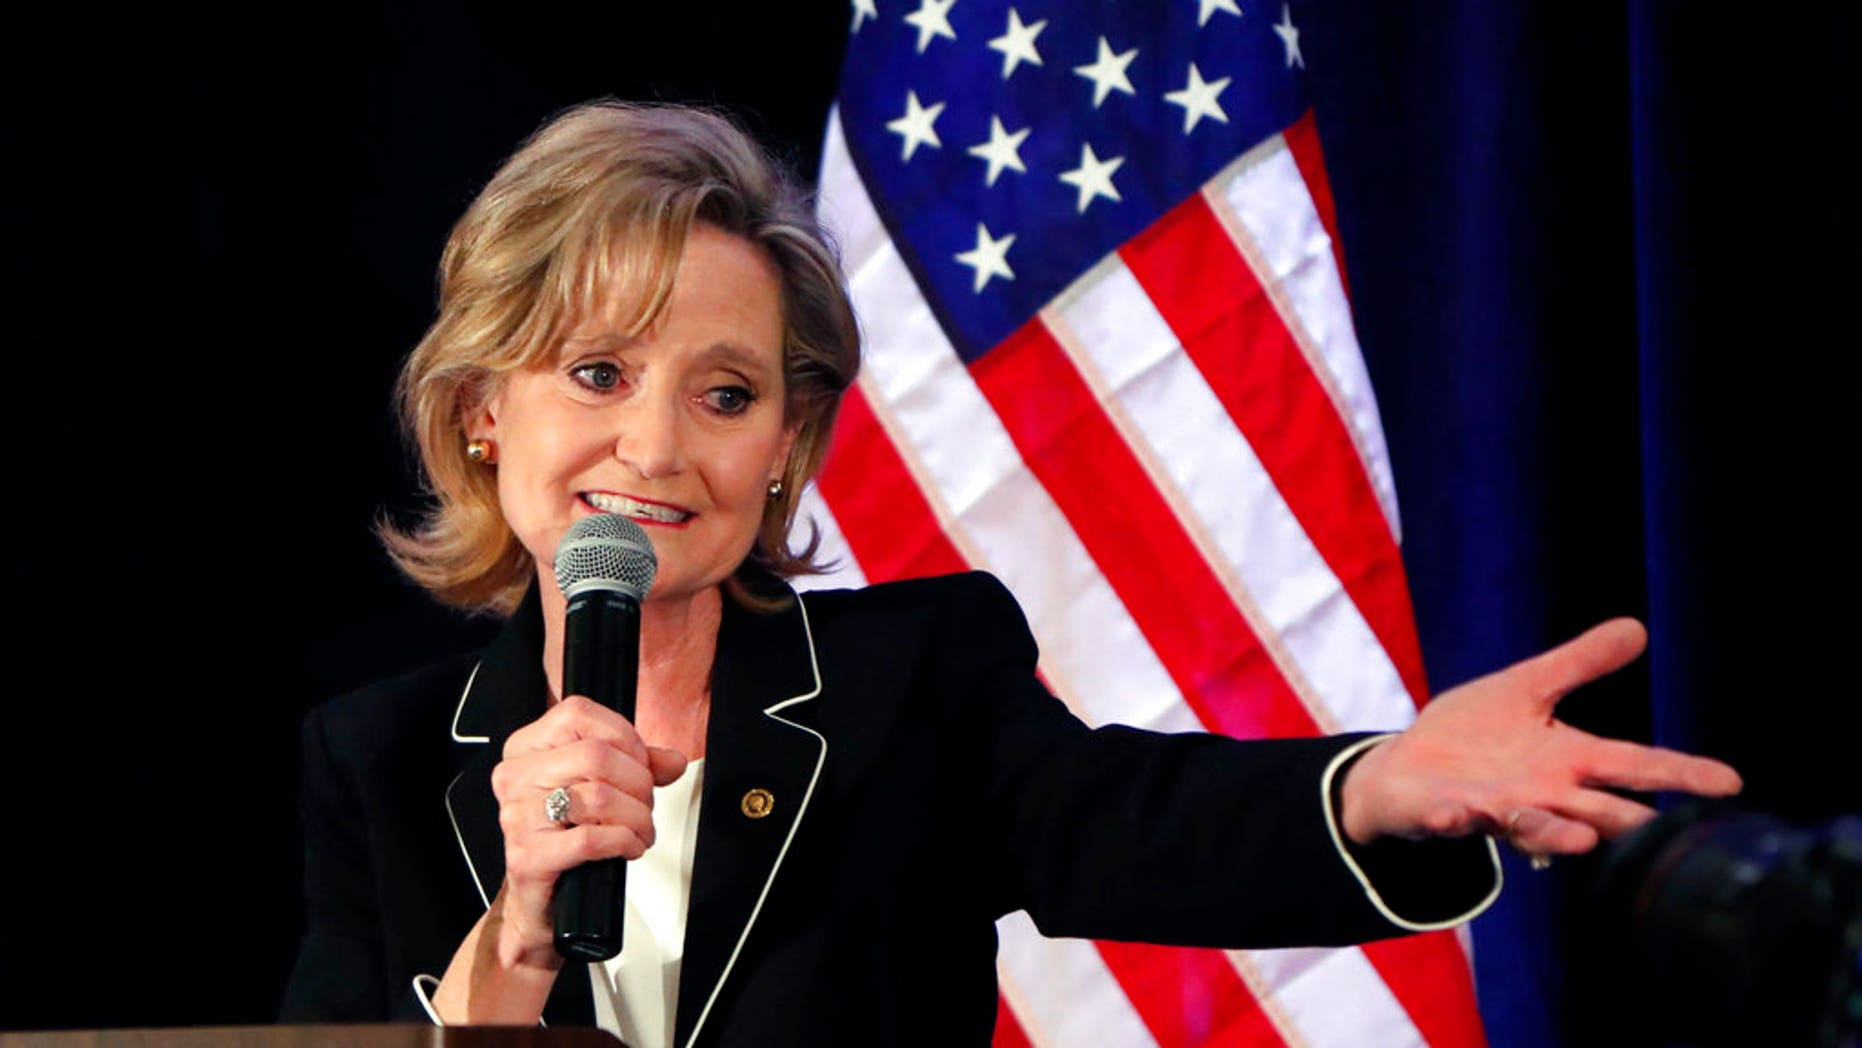 Republican U.S. Sen. Cindy Hyde-Smith celebrates her runoff win over Democrat Mike Espy in Jackson, Miss., Tuesday, Nov. 27, 2018. Hyde-Smith will now serve the final two years of retired Republican Sen. Thad Cochran's six year term. (AP Photo/Rogelio V. Solis)